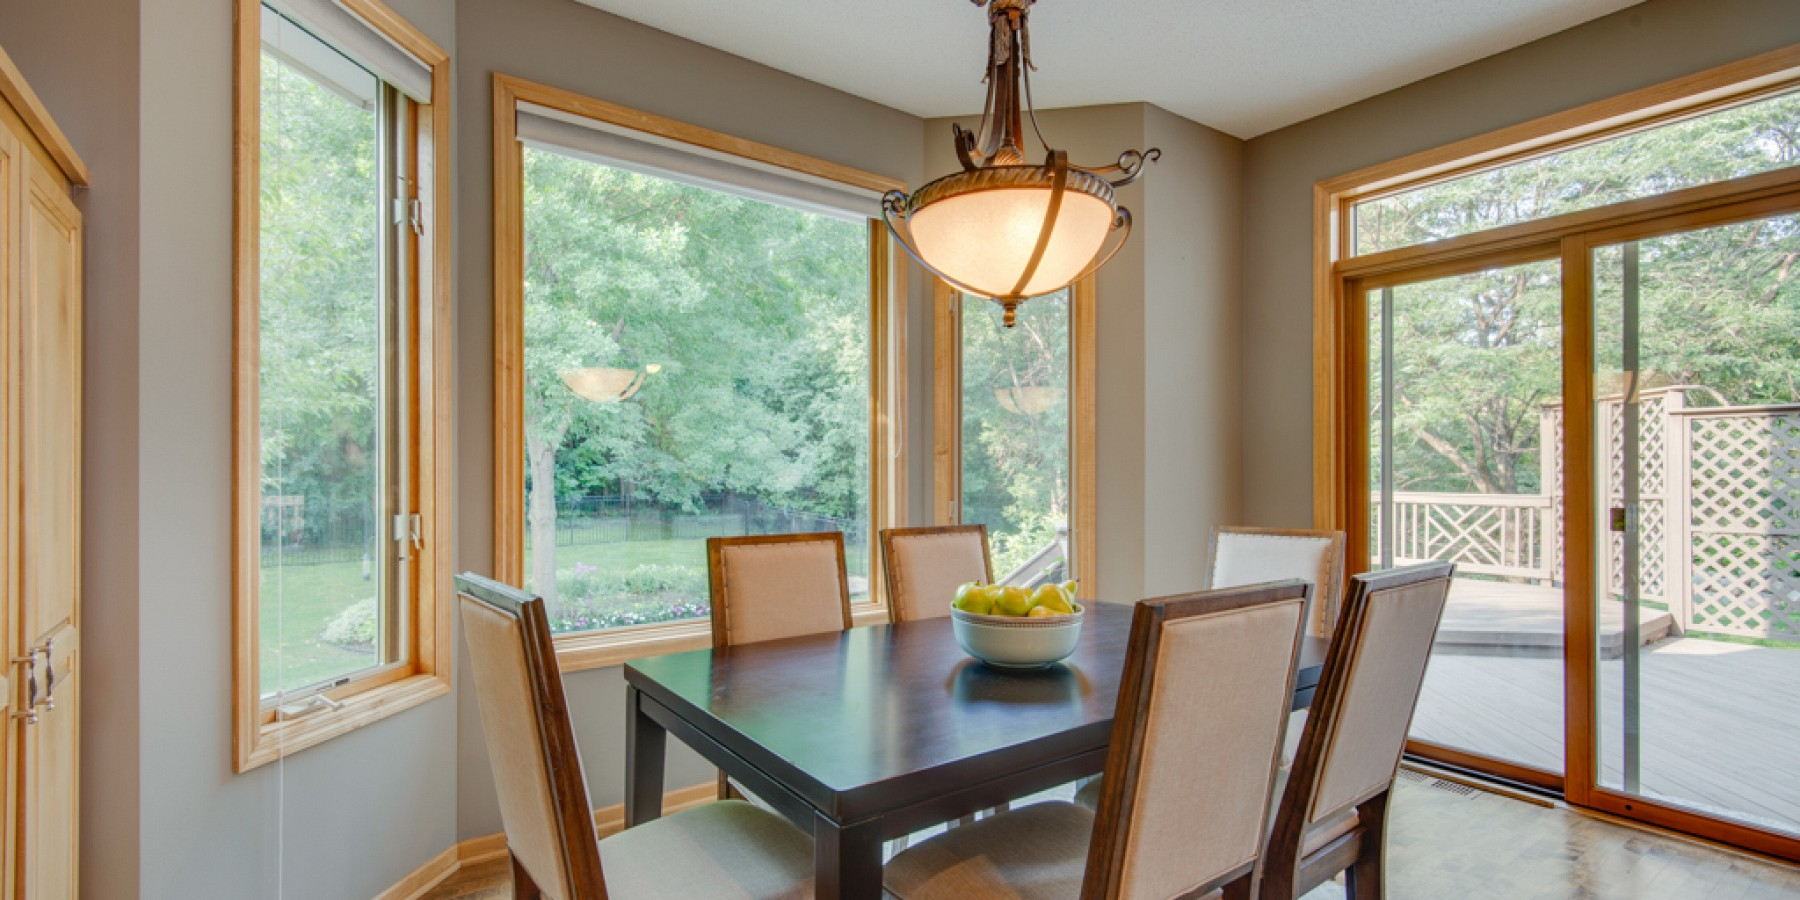 4180 LAKERIDGE ROAD, CHANHASSEN, MN 55331